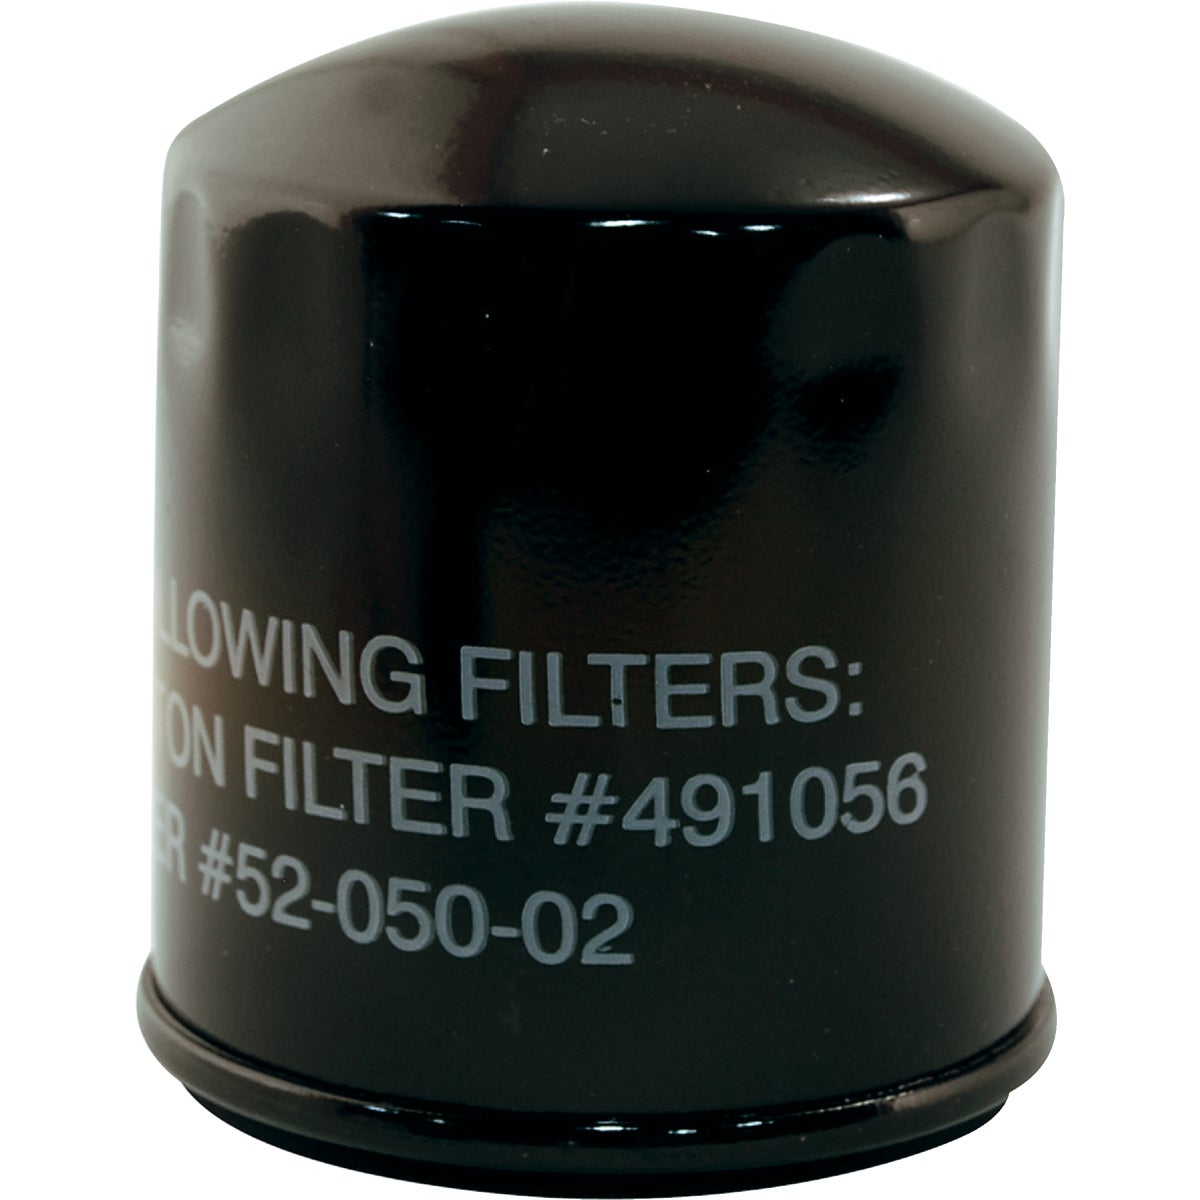 KOHLER/B&S OIL FILTER - 5205002SIC by Arnold Corp